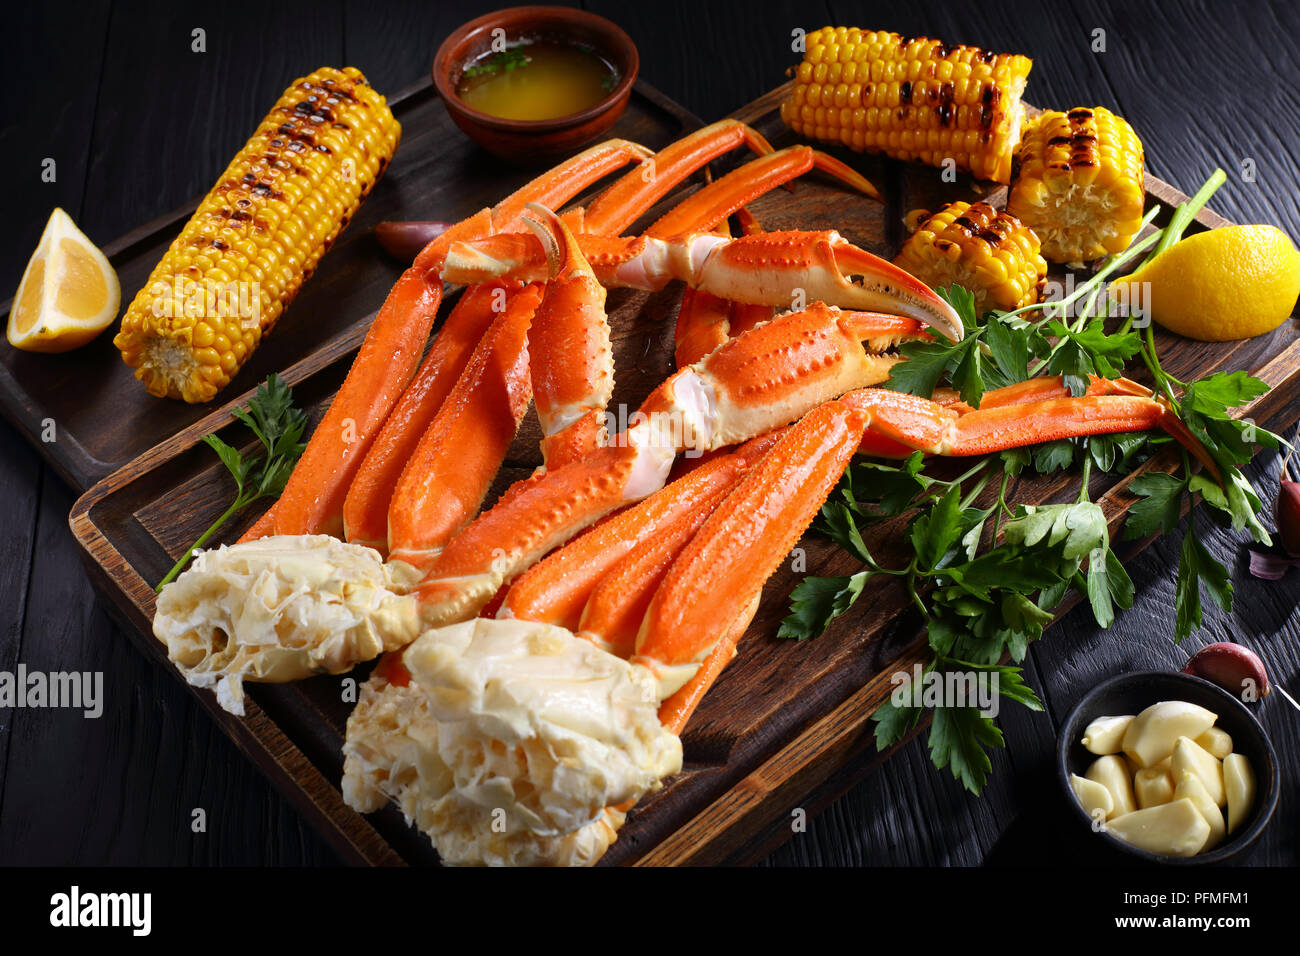 Snow Crab Legs Stock Photos & Snow Crab Legs Stock Images - Alamy